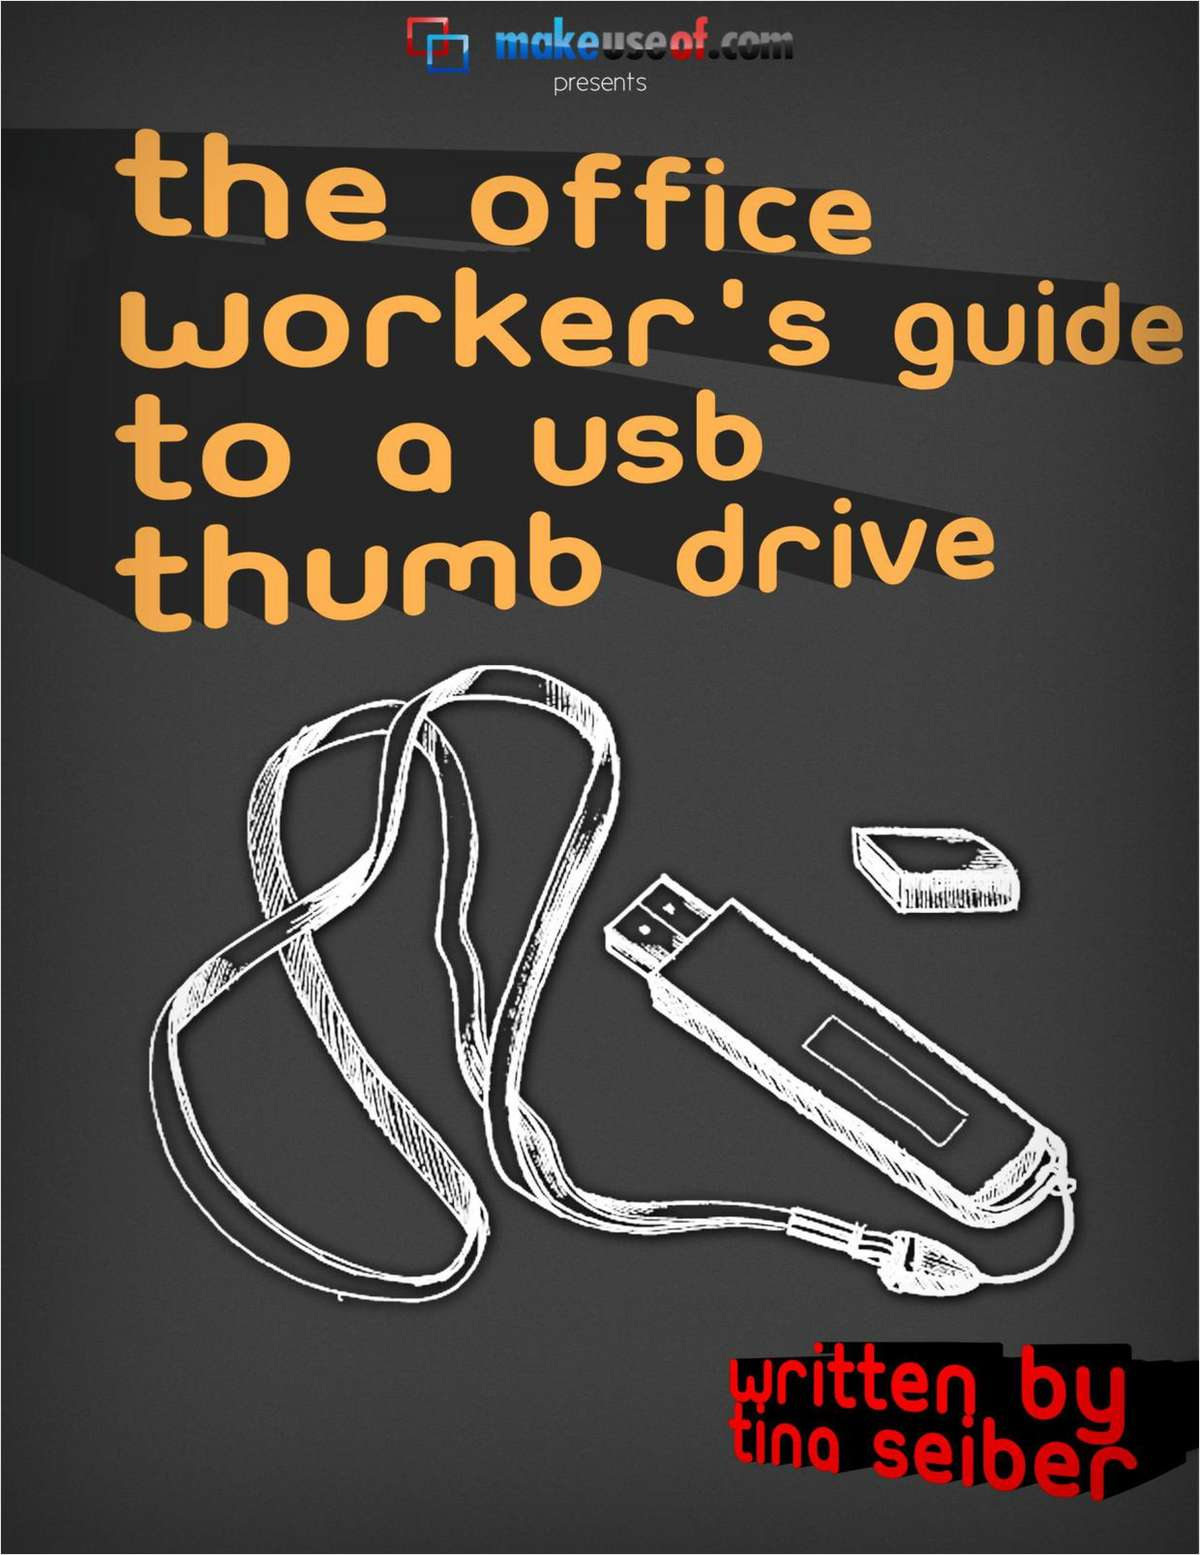 The Office Worker's Guide to a USB Thumb Drive